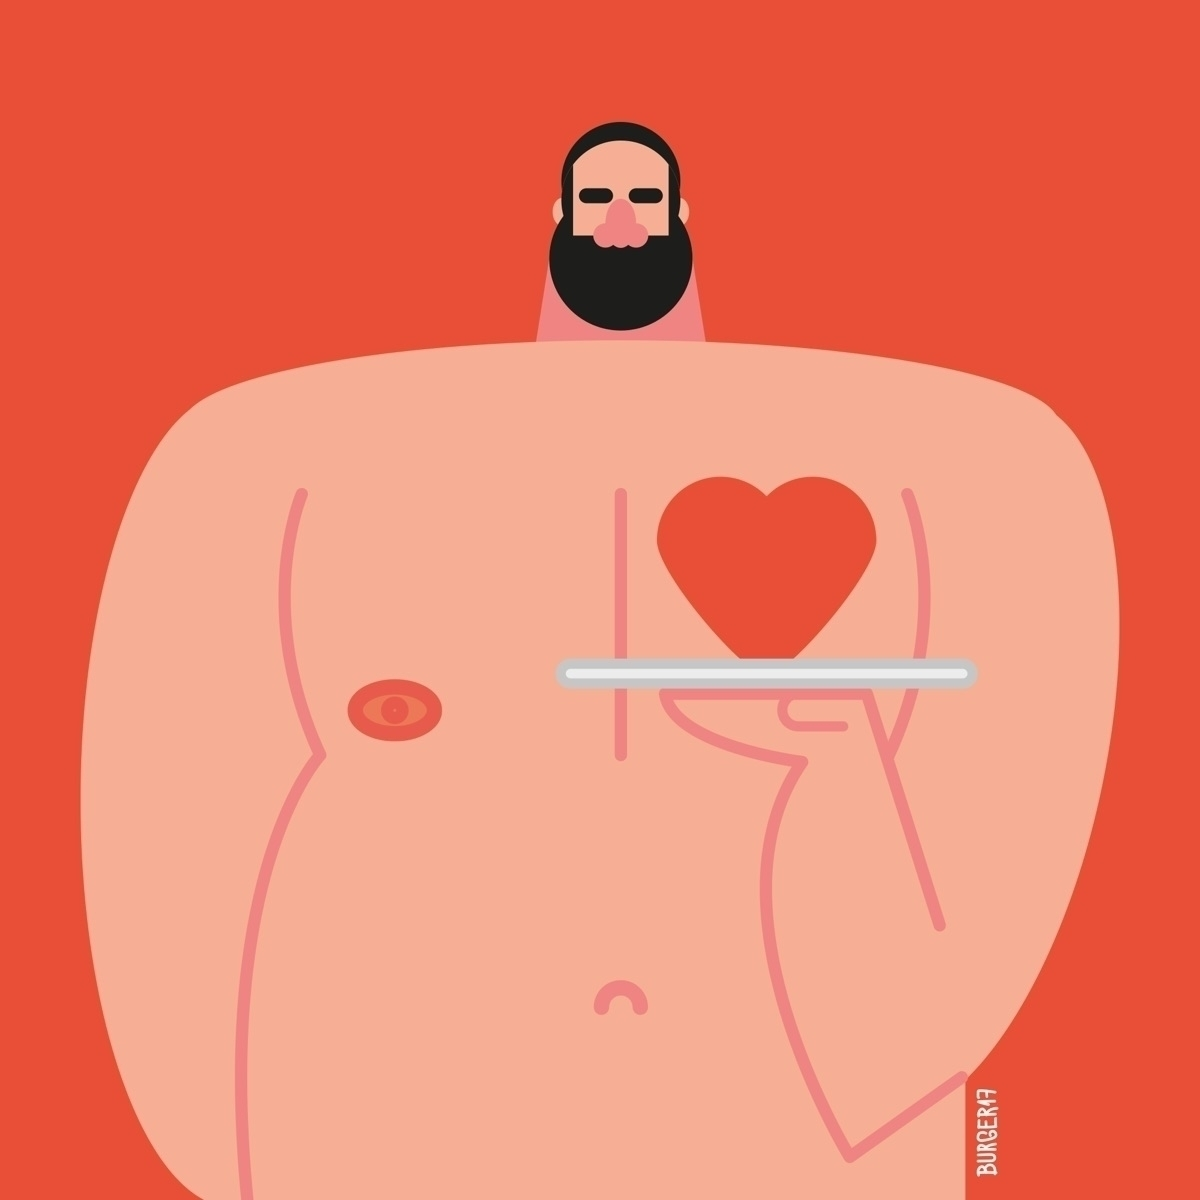 illustration, bear, oso, urso - eduardoburger | ello